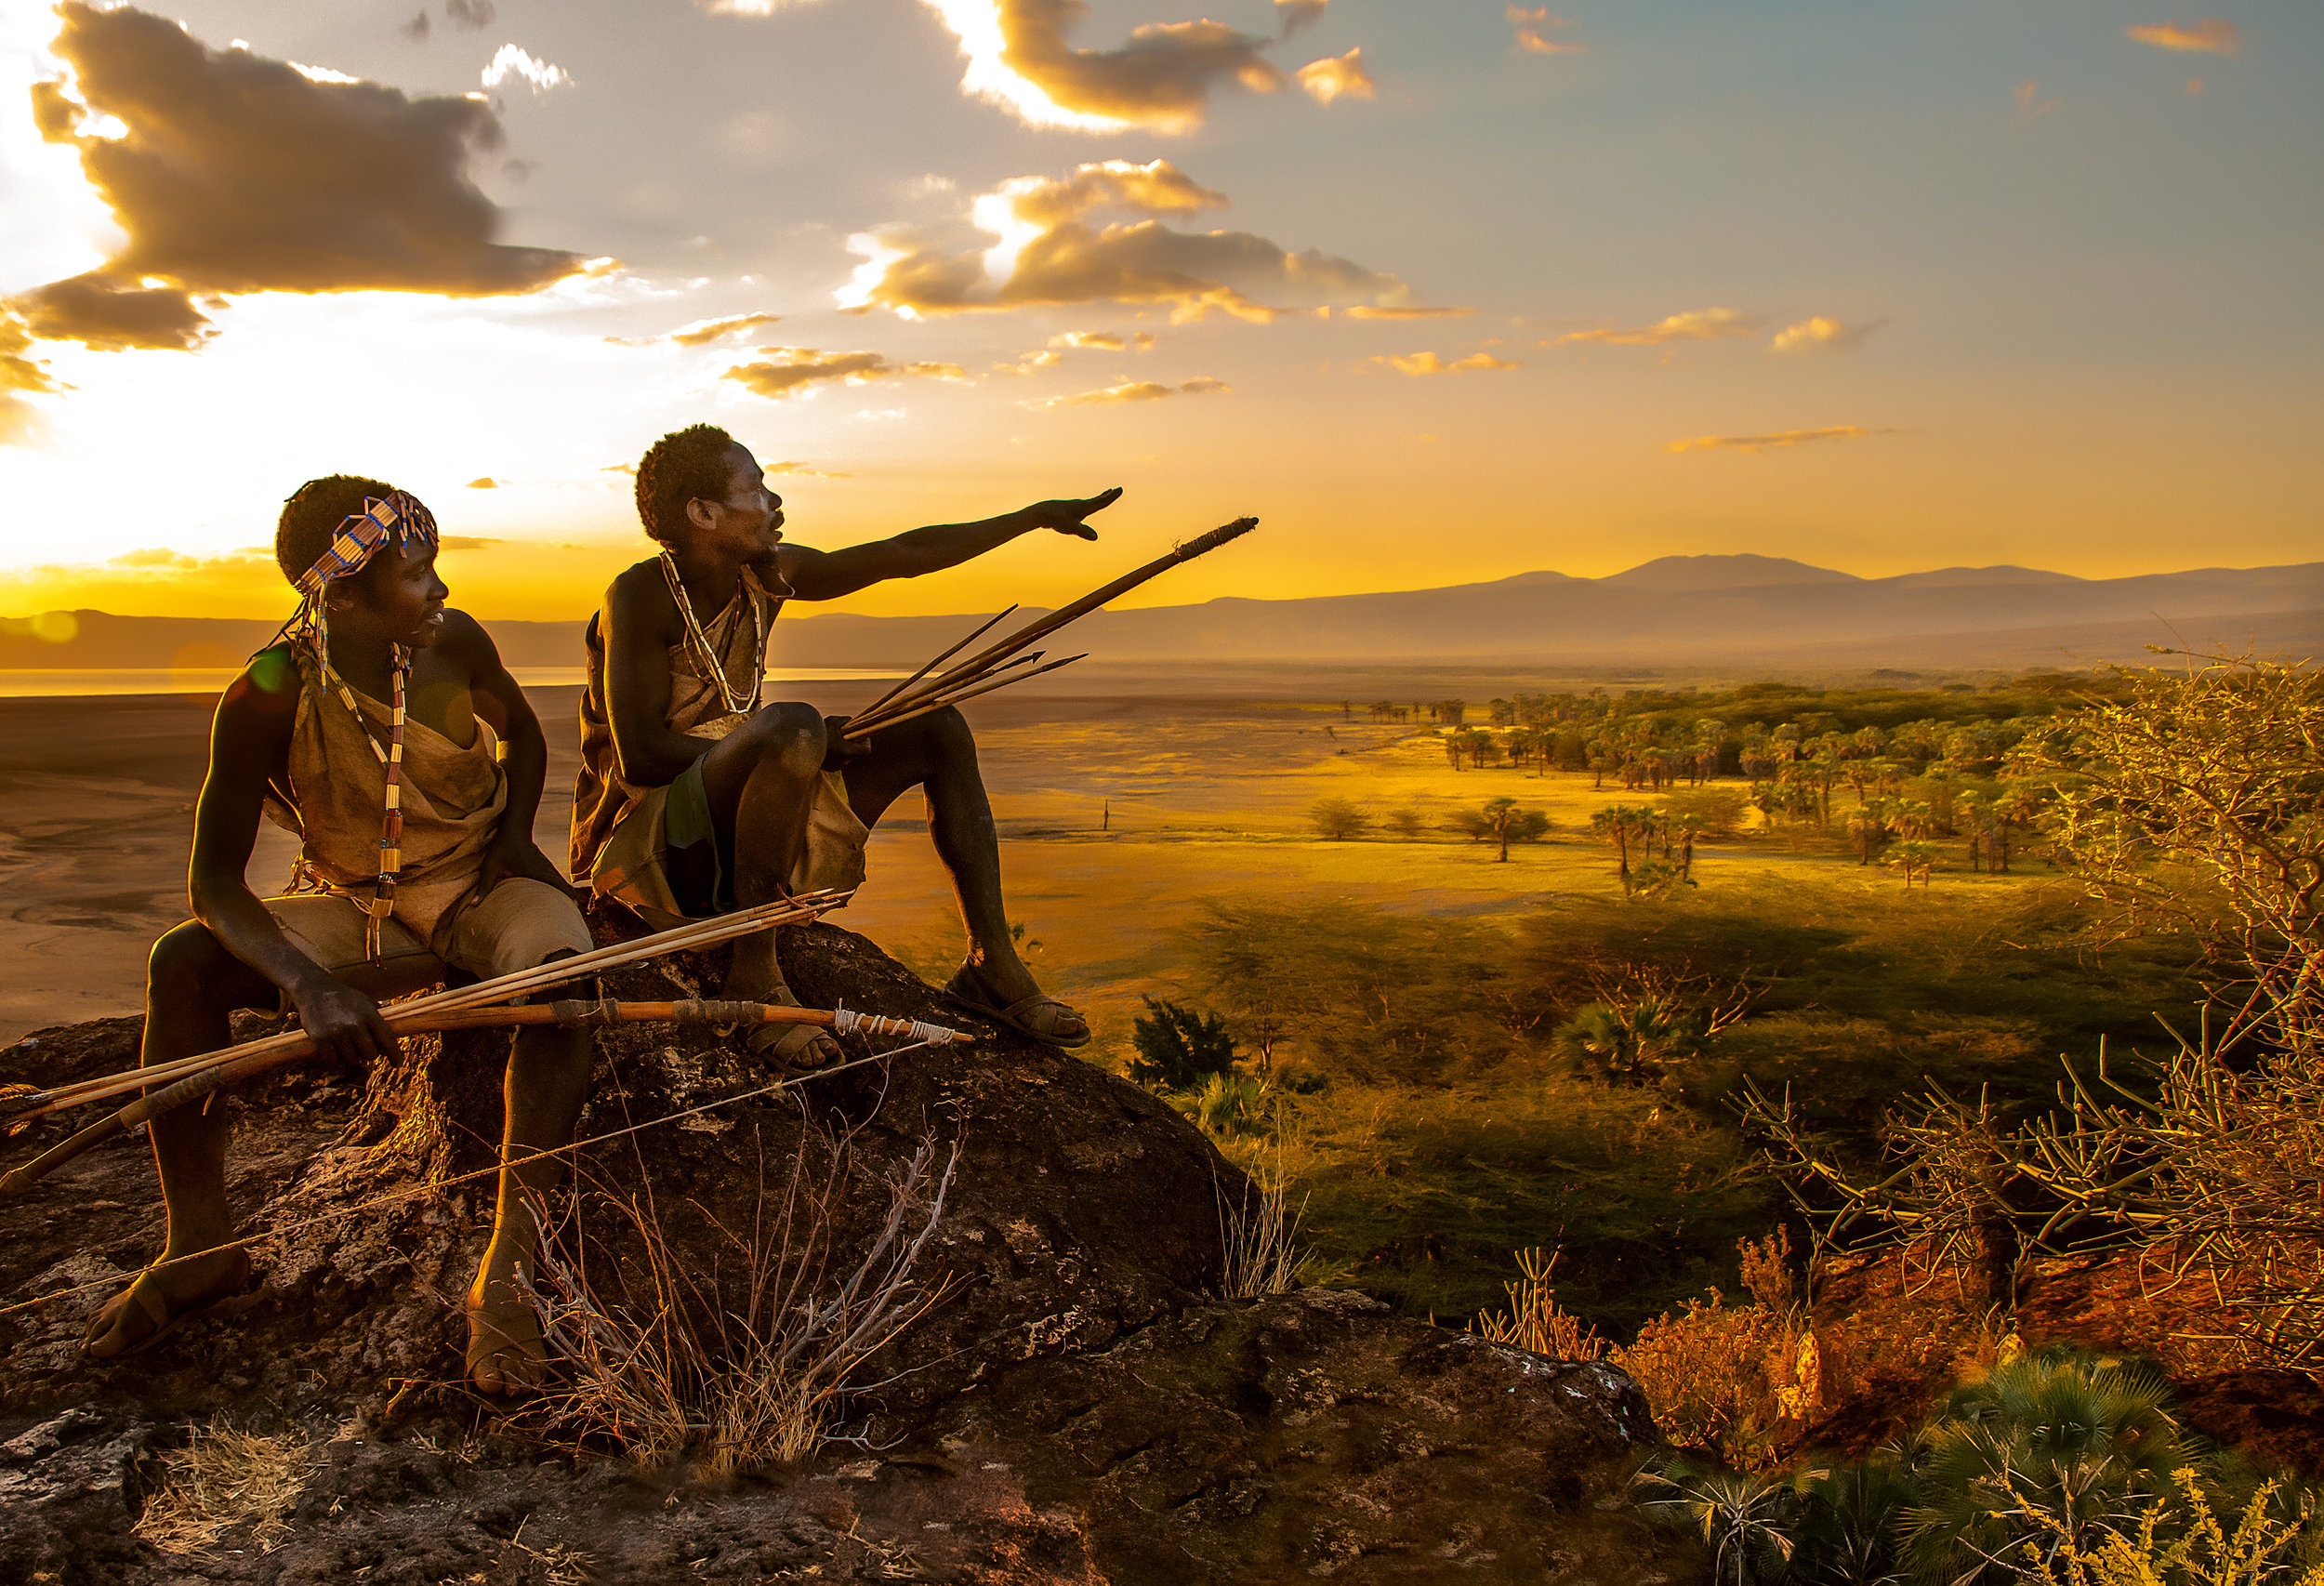 Two Hadza hunters overlooking their territory bordering Lake Eyasi. © African Twilight: The Vanishing Cultures and Ceremonies of the African Continent by Carol Beckwith and Angela Fisher, Rizzoli, 2018.